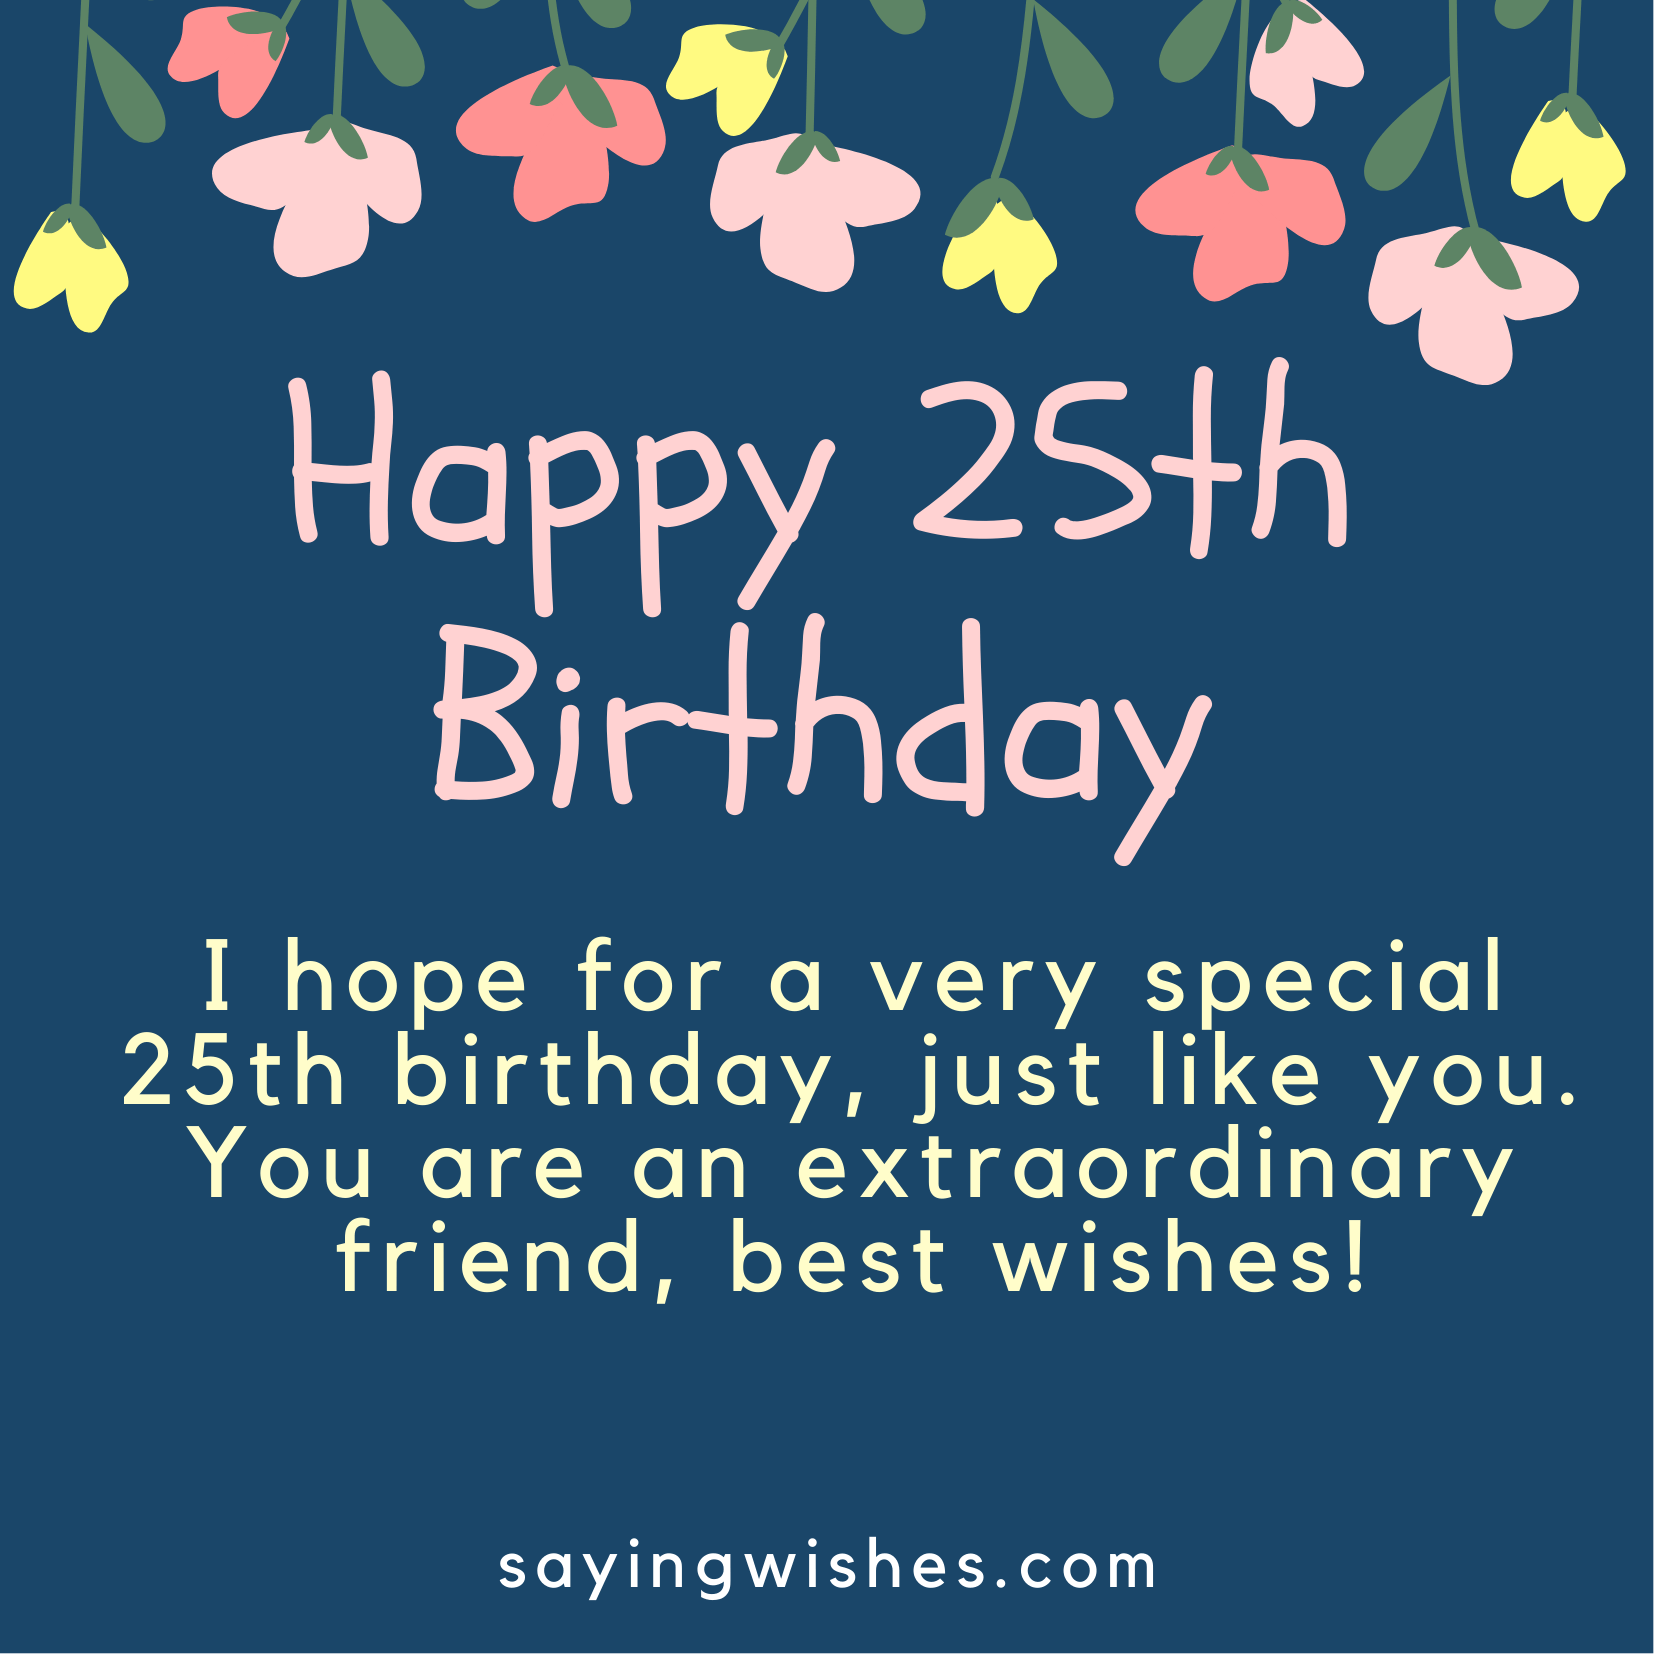 25th birthday wishes messages for daughter